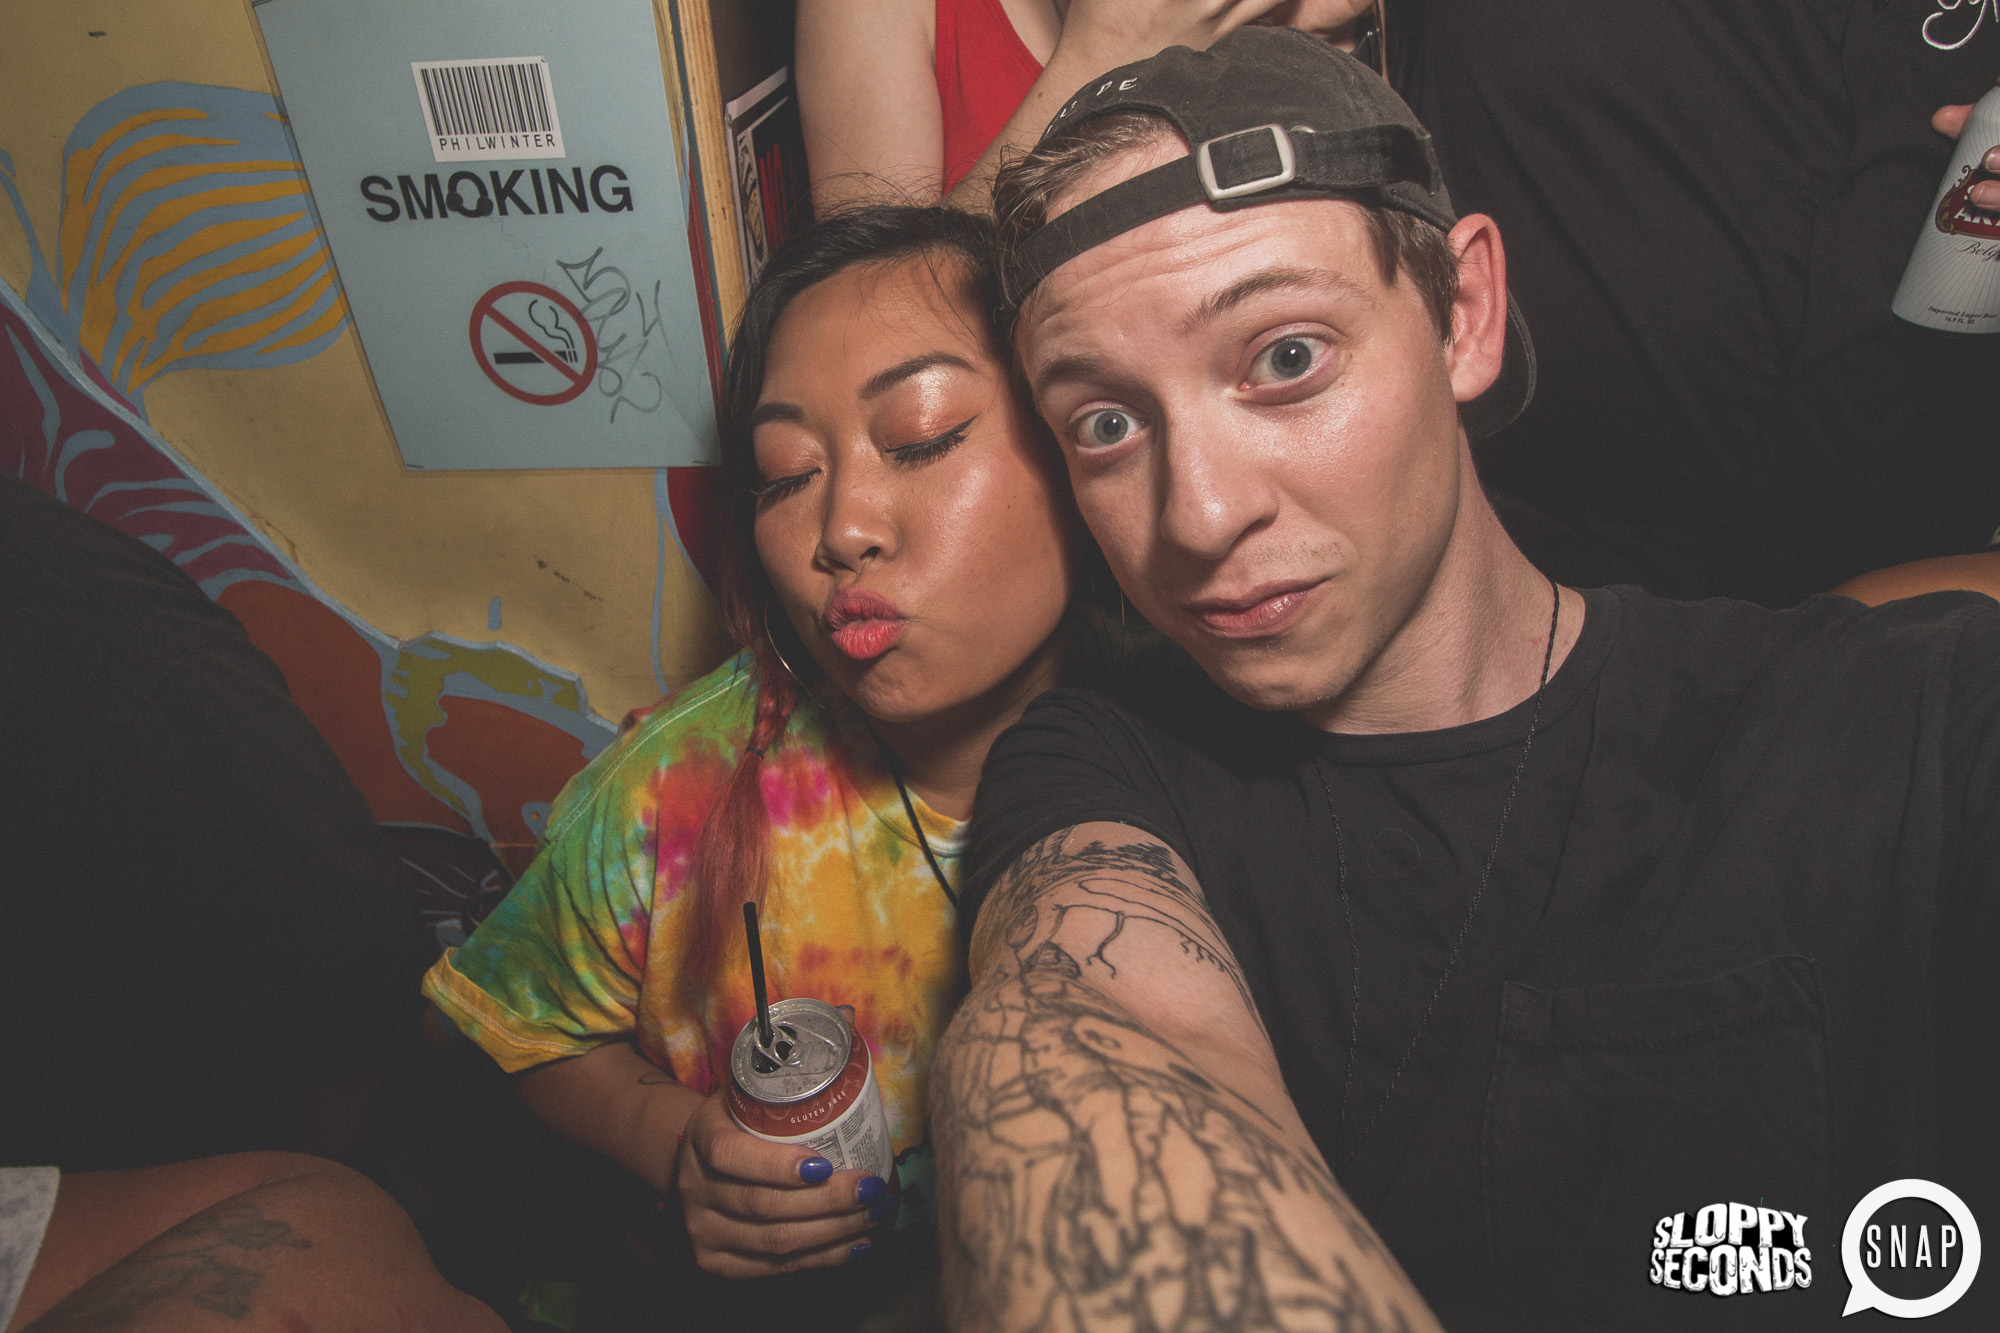 Sloppy Seconds 7.13.19 Oh Snap Kid Colin Boddy Atlanta-57.jpg